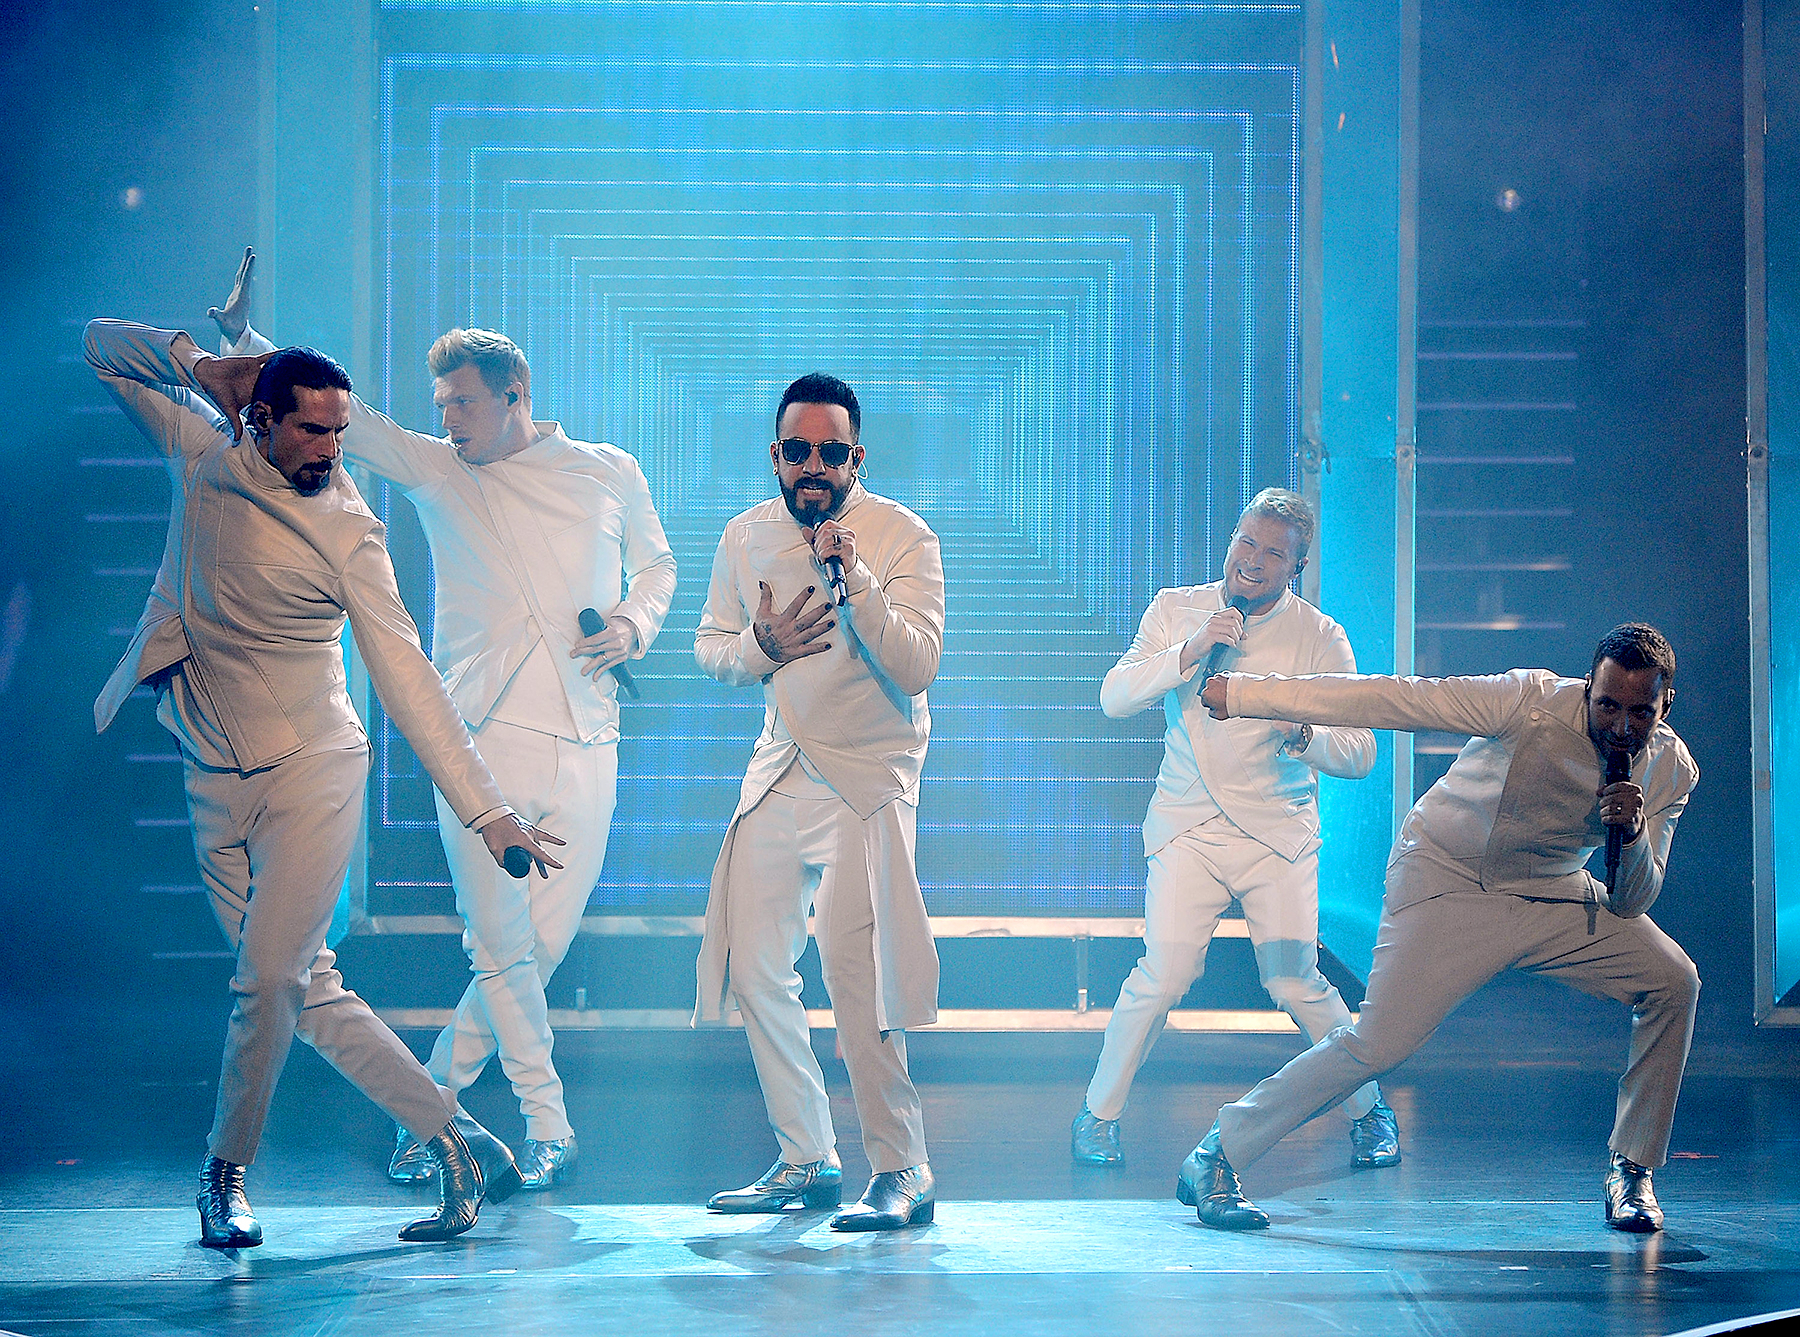 """Kevin Richardson, Nick Carter, AJ McLean, Brian Littrell and Howie Dorough of the Backstreet Boys perform during the launch of the group's residency """"Larger Than Life"""" at The Axis at Planet Hollywood Resort & Casino on March 1, 2017 in Las Vegas, Nevada. in Las Vegas, Nevada."""